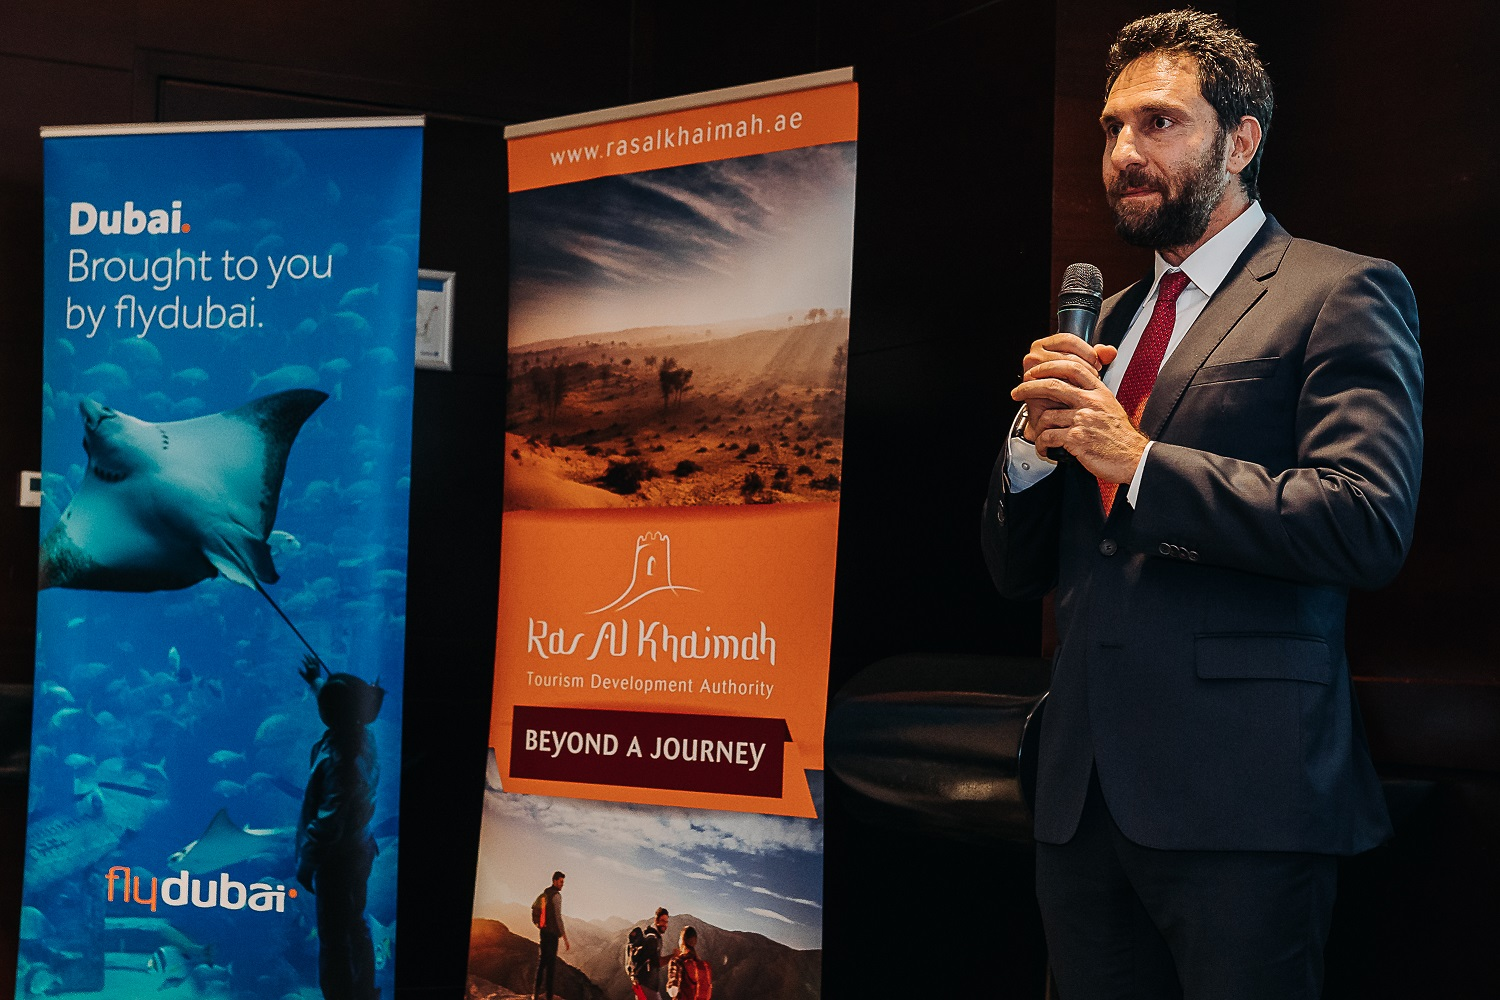 RAK Tourism Development Authority Continues Promotional Efforts in Eastern Europe Following Growth in 2018